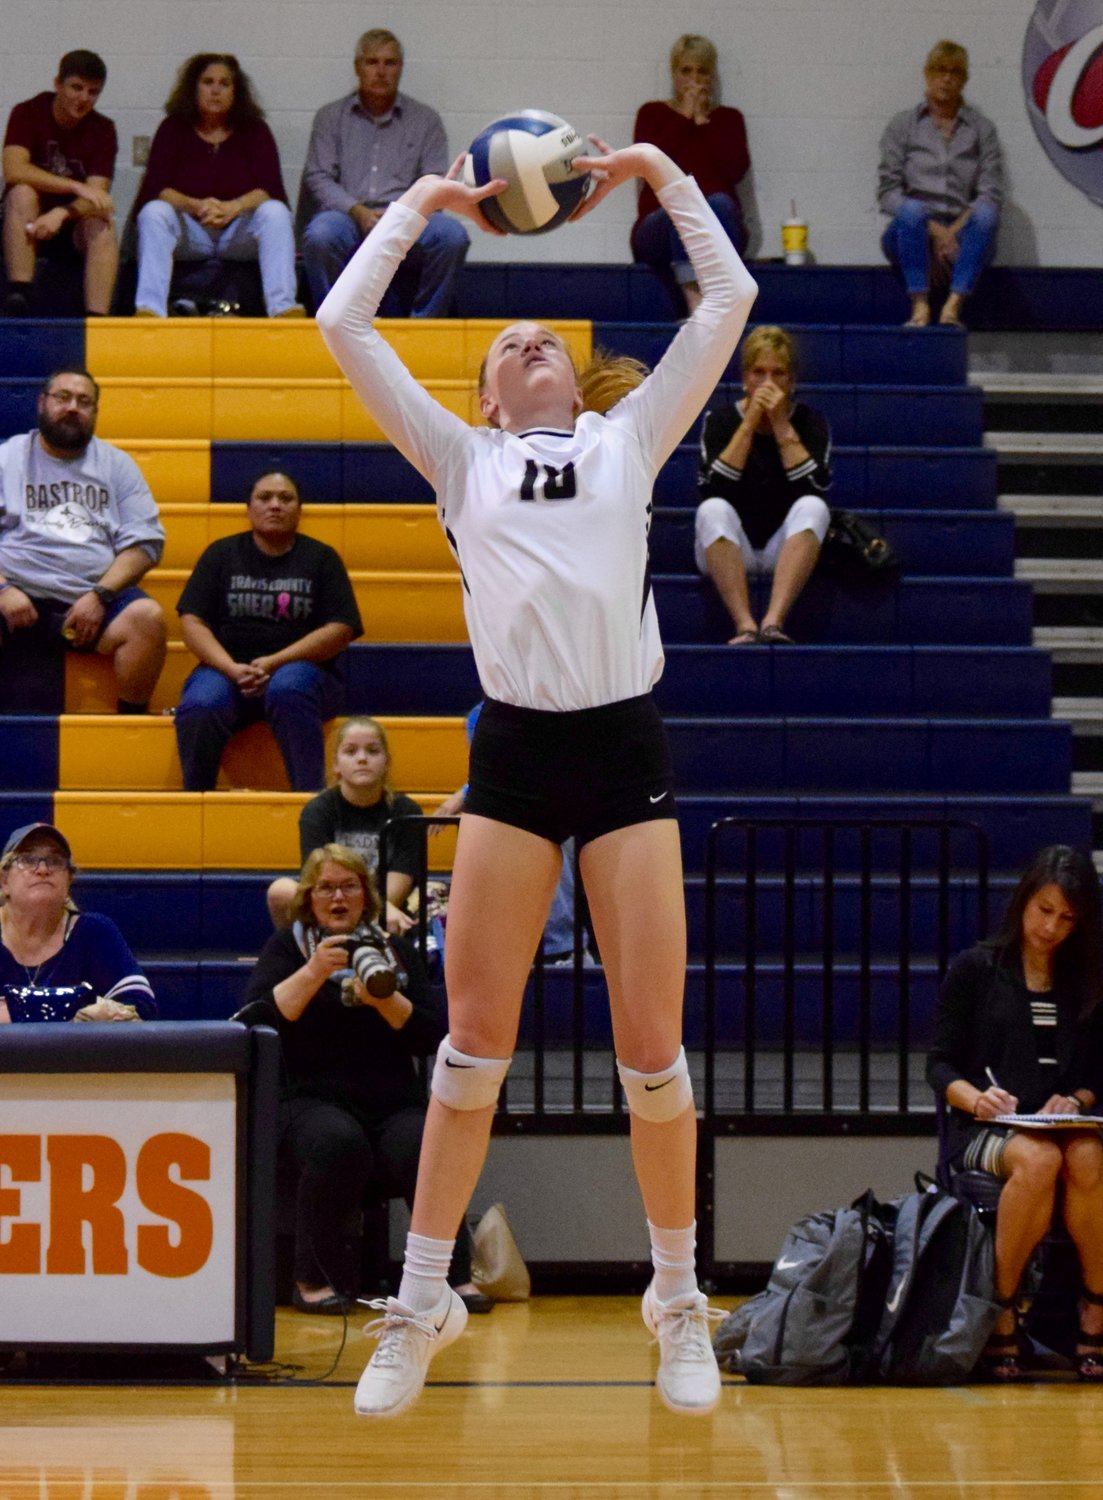 Kara Erfurth and Rouse swept Bastrop 3-0 (25-16, 25-14, 25-23) on Tuesday night to advance to the area round of the playoffs for the third year in a row.